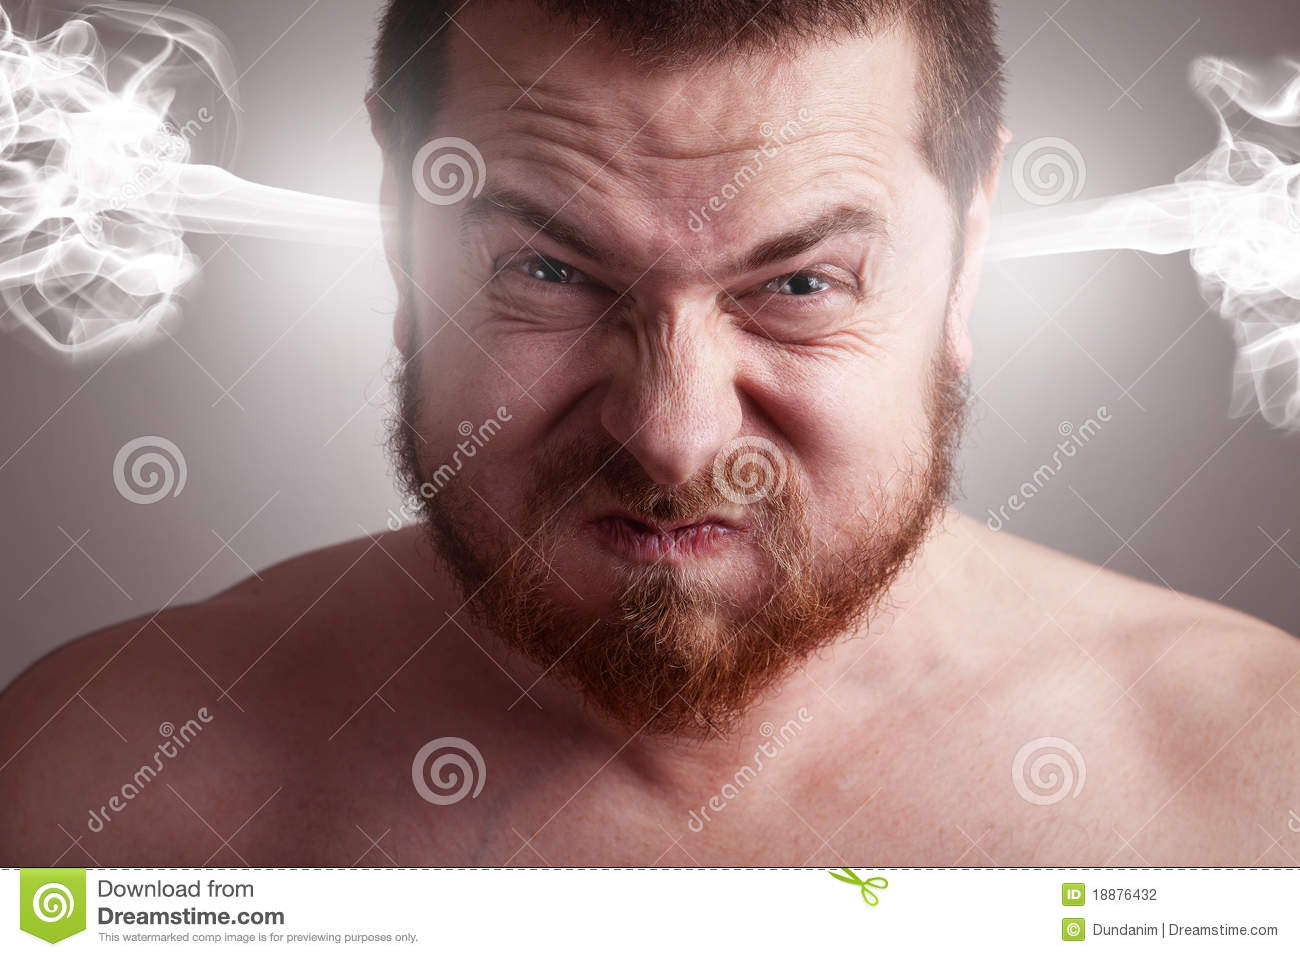 Download Stress Concept - Angry Man With Exploding Head Stock Photo - Image of anger, frustration: 18876432